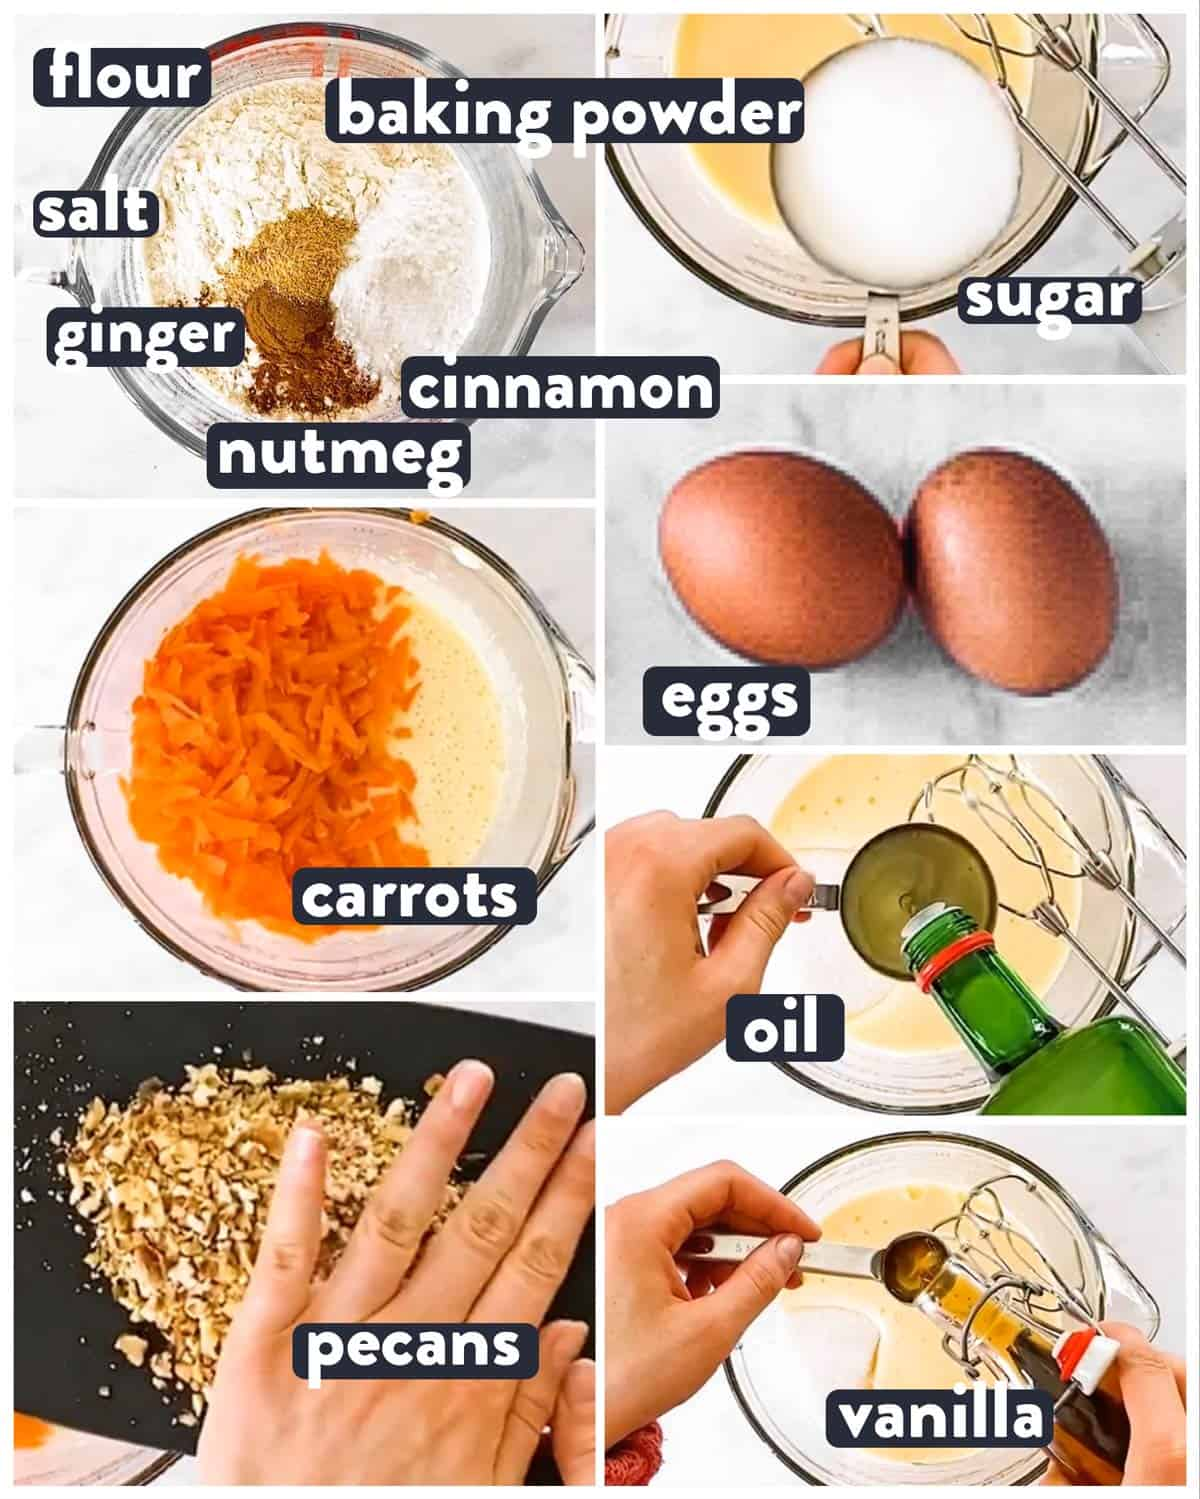 ingredients for carrot cake loaf with text labels